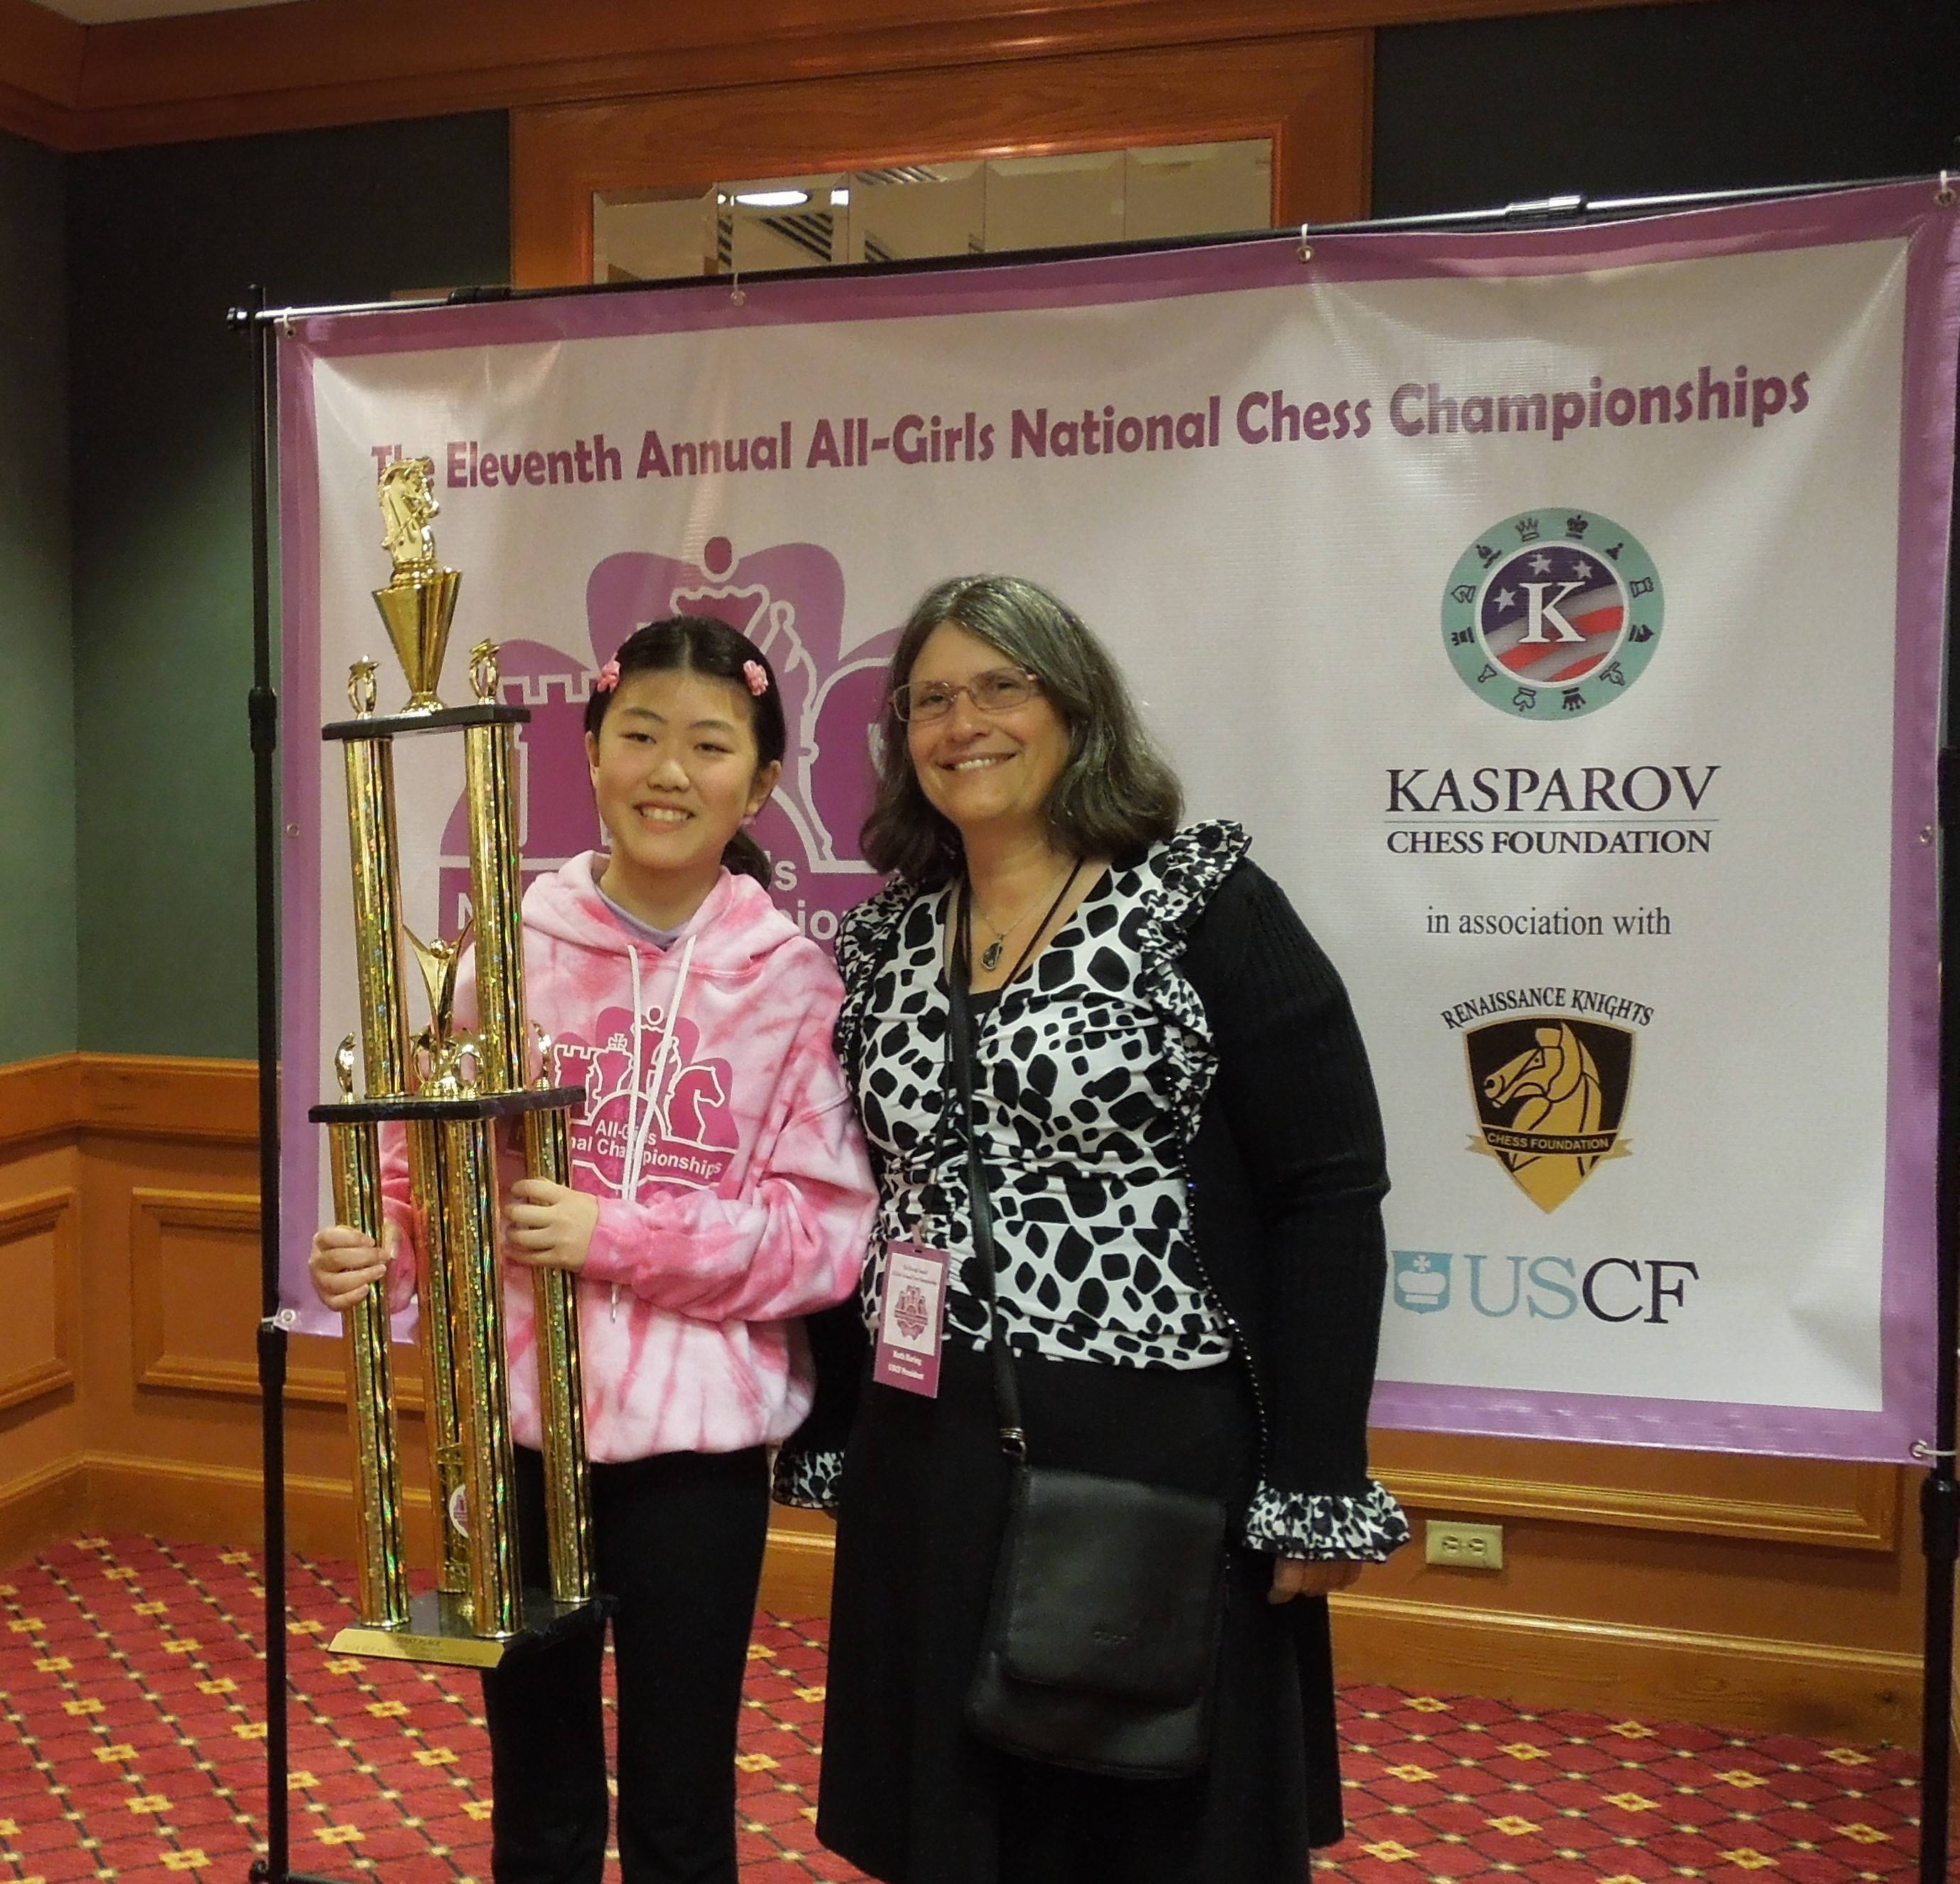 Marissa Li shows off her trophy alongside United States Chess Federation President Ruth Haring.